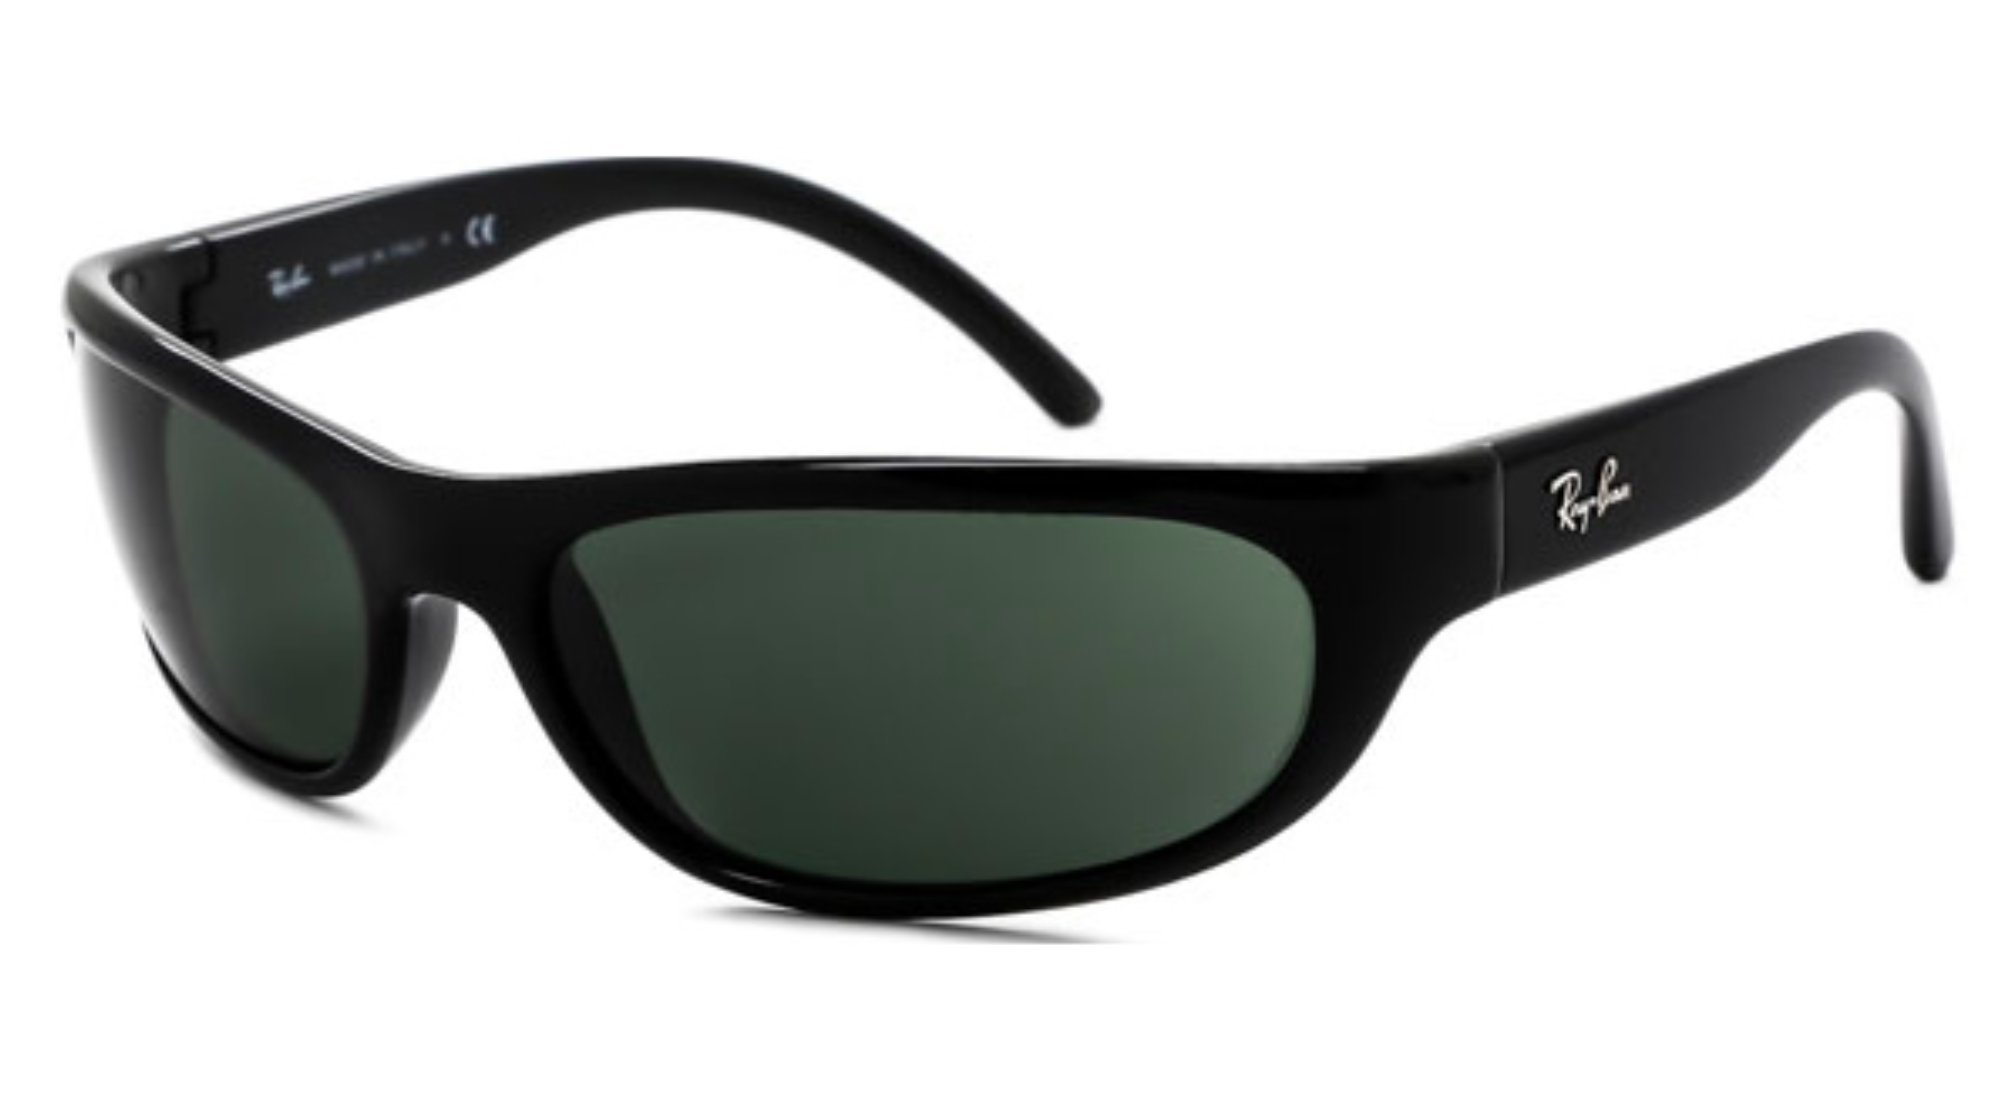 RAY-BAN  RB4033 - 601S48 Predator Polarized Sunglasses 60mm by Ray-Ban